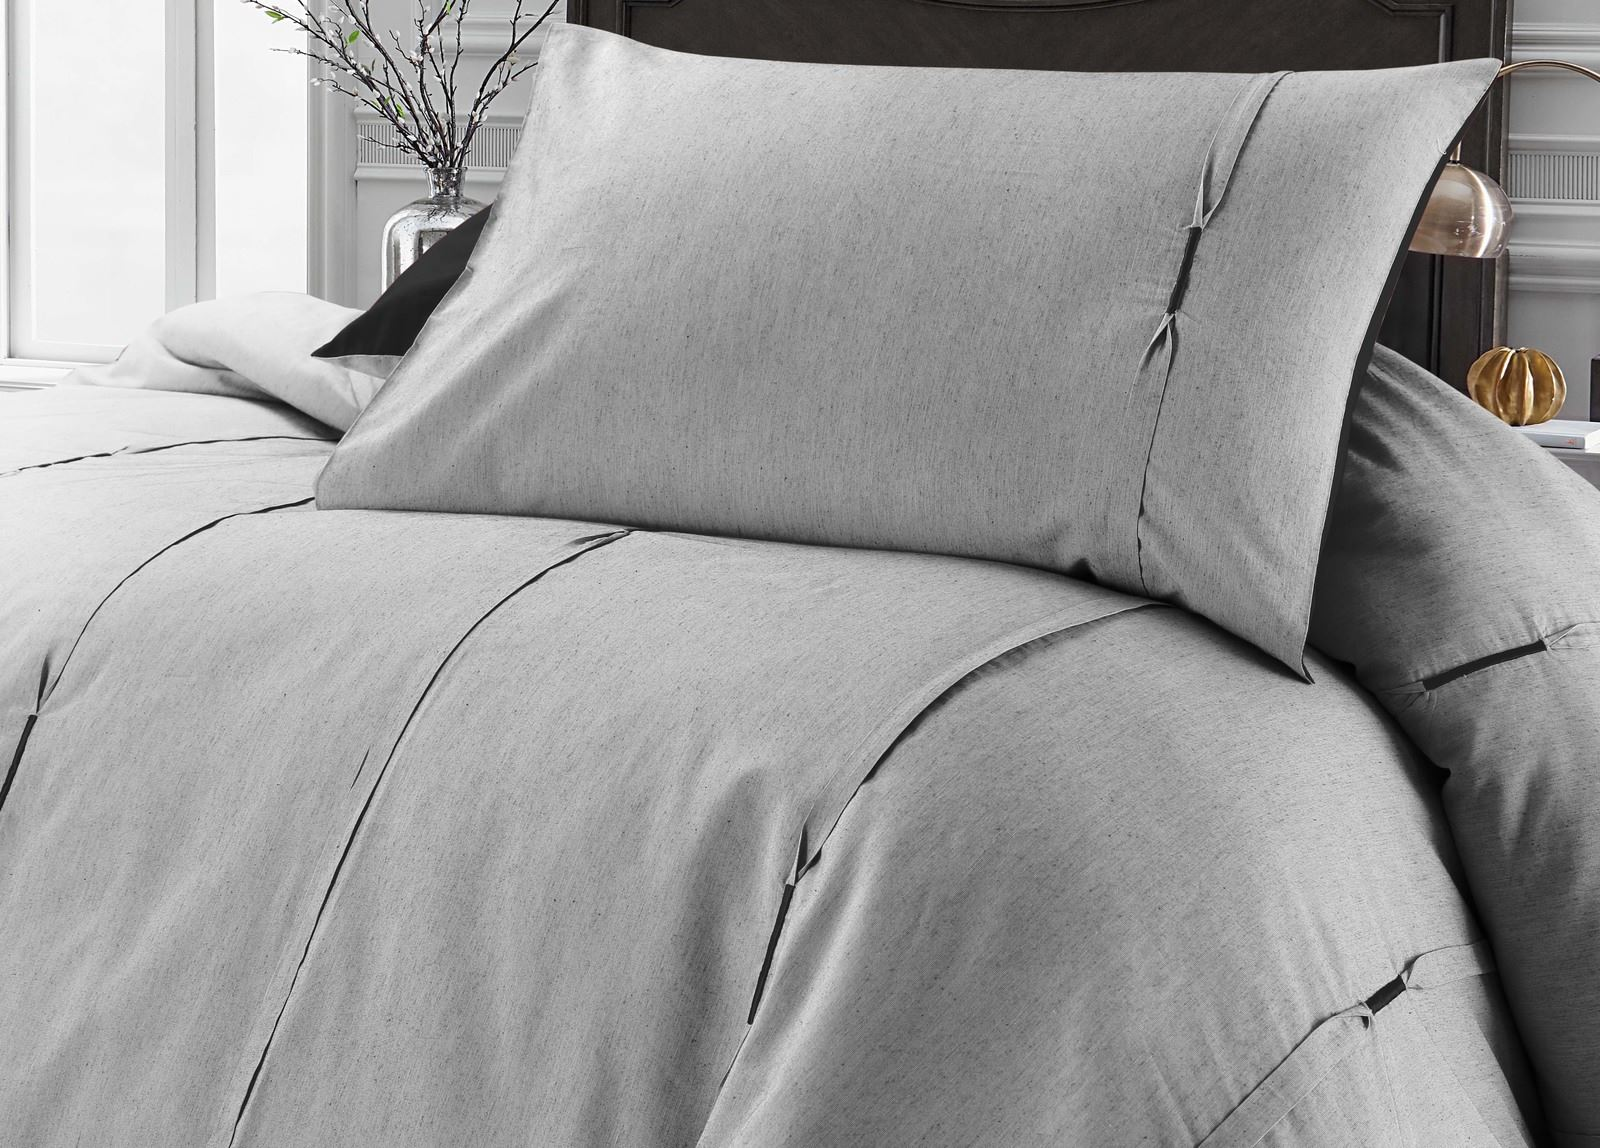 Luxury-Embellished-Duvet-Cover-Set-Single-Double-Super-King-Size-Bedding-Grey thumbnail 19